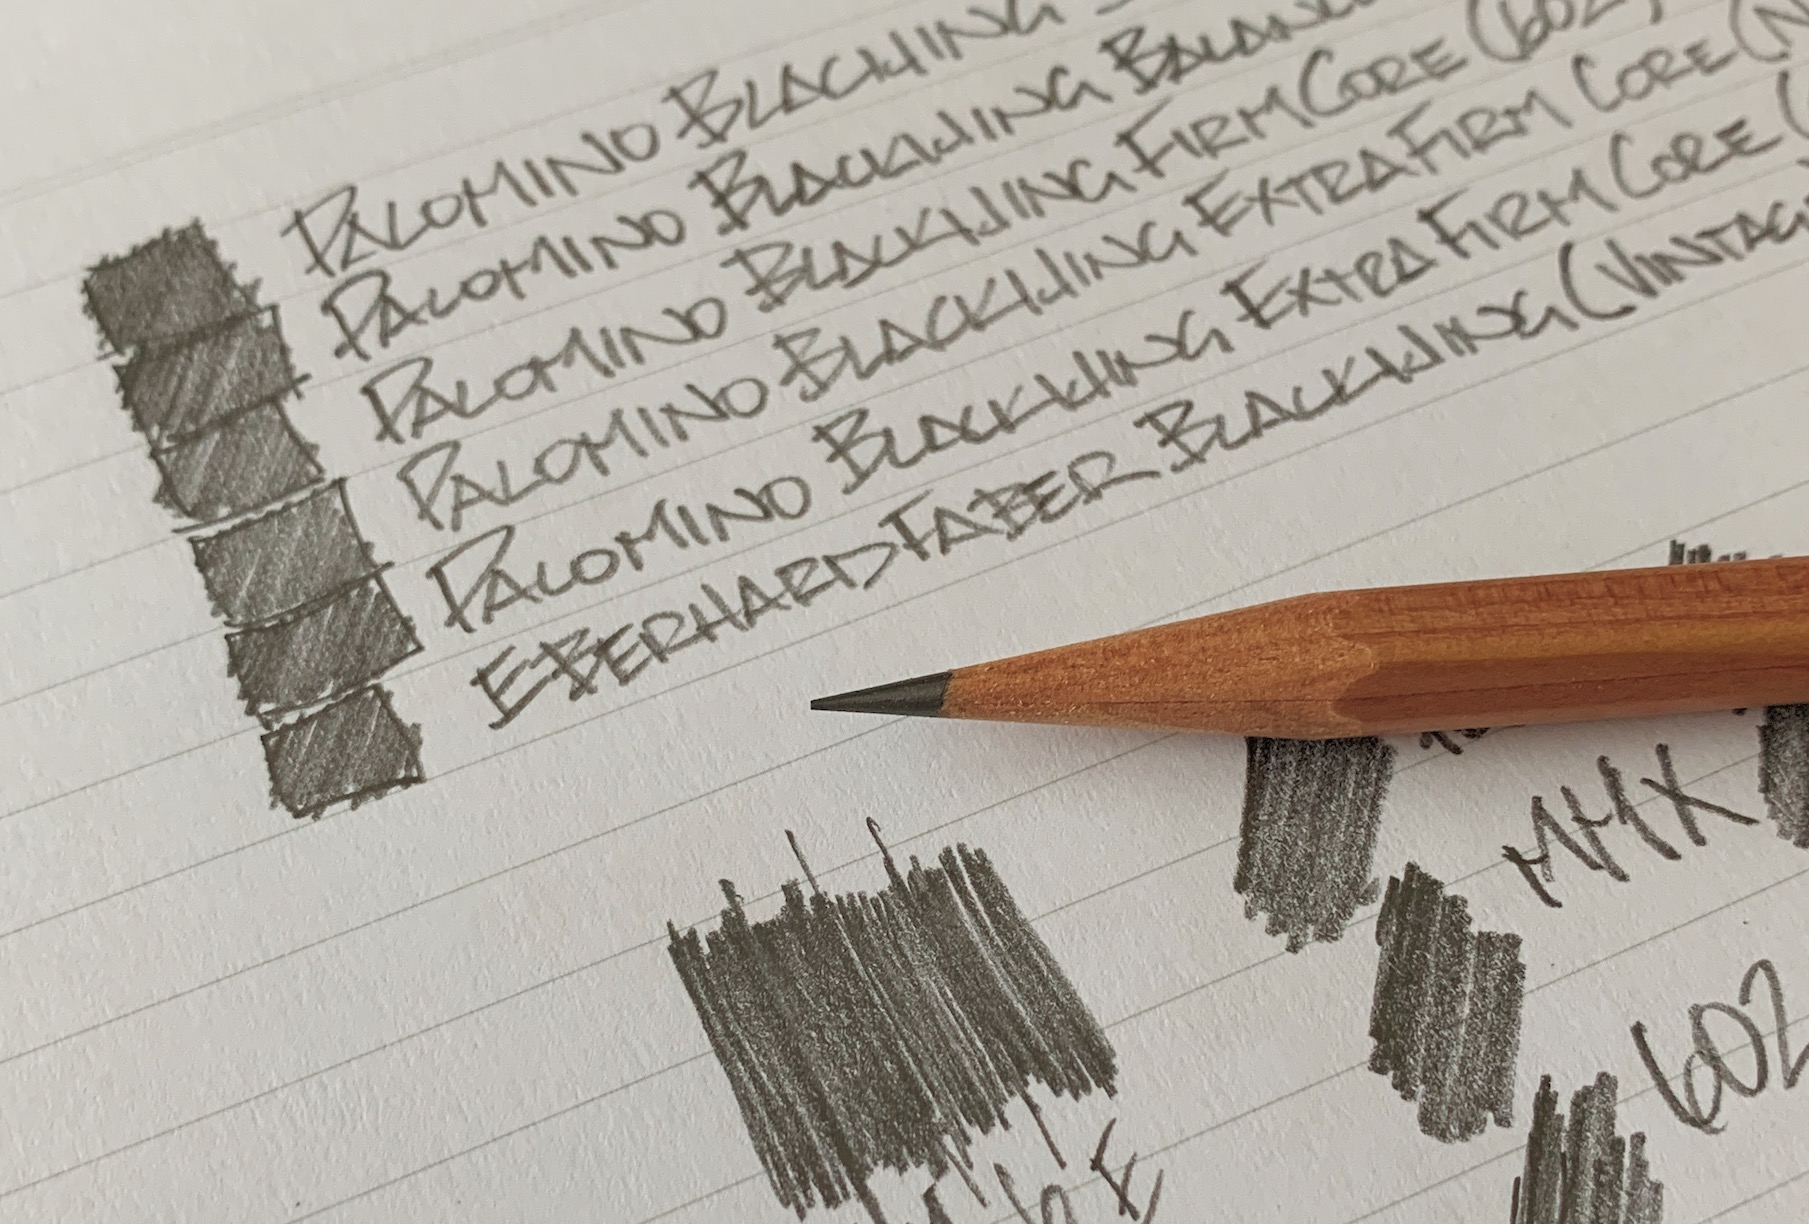 Palomino Blackwing writing samples